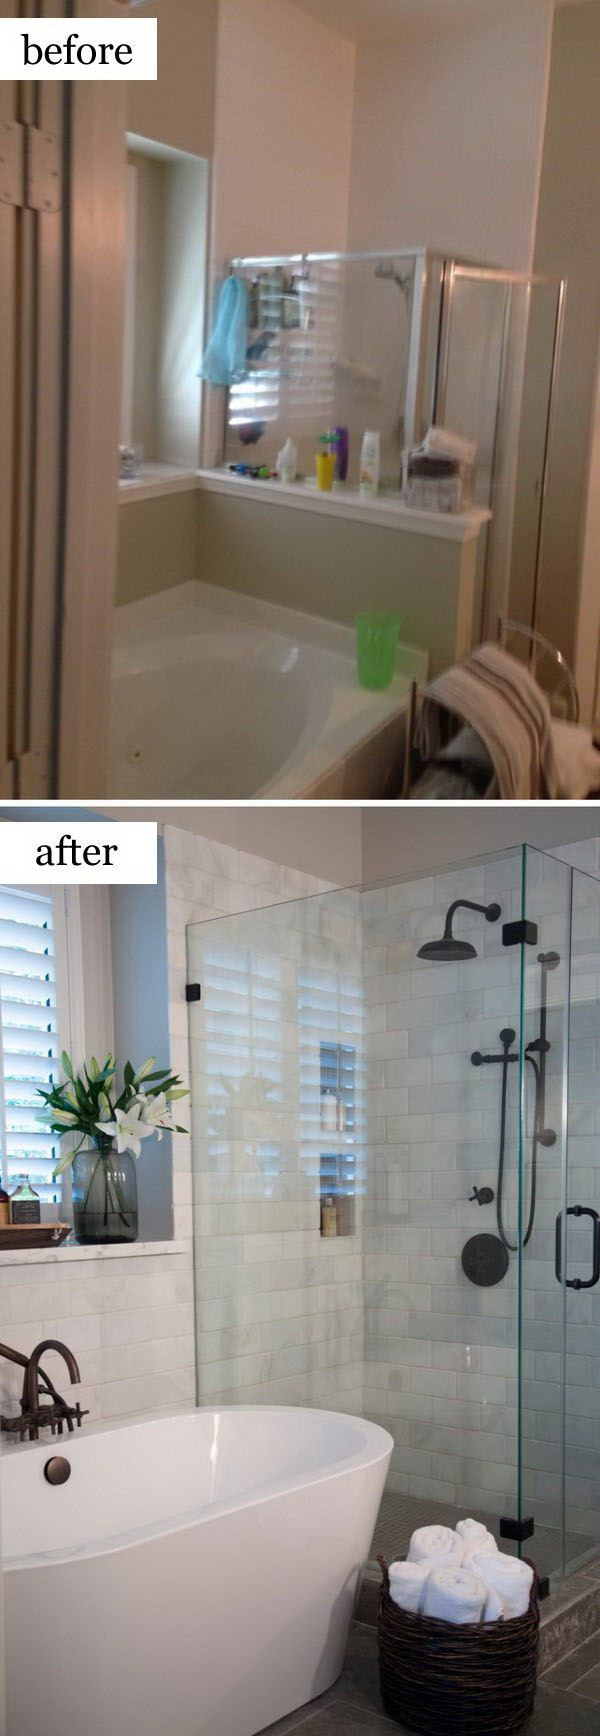 Best Small Shower Stalls Ideas On Pinterest Small Showers - Diy shower remodel for small bathroom ideas